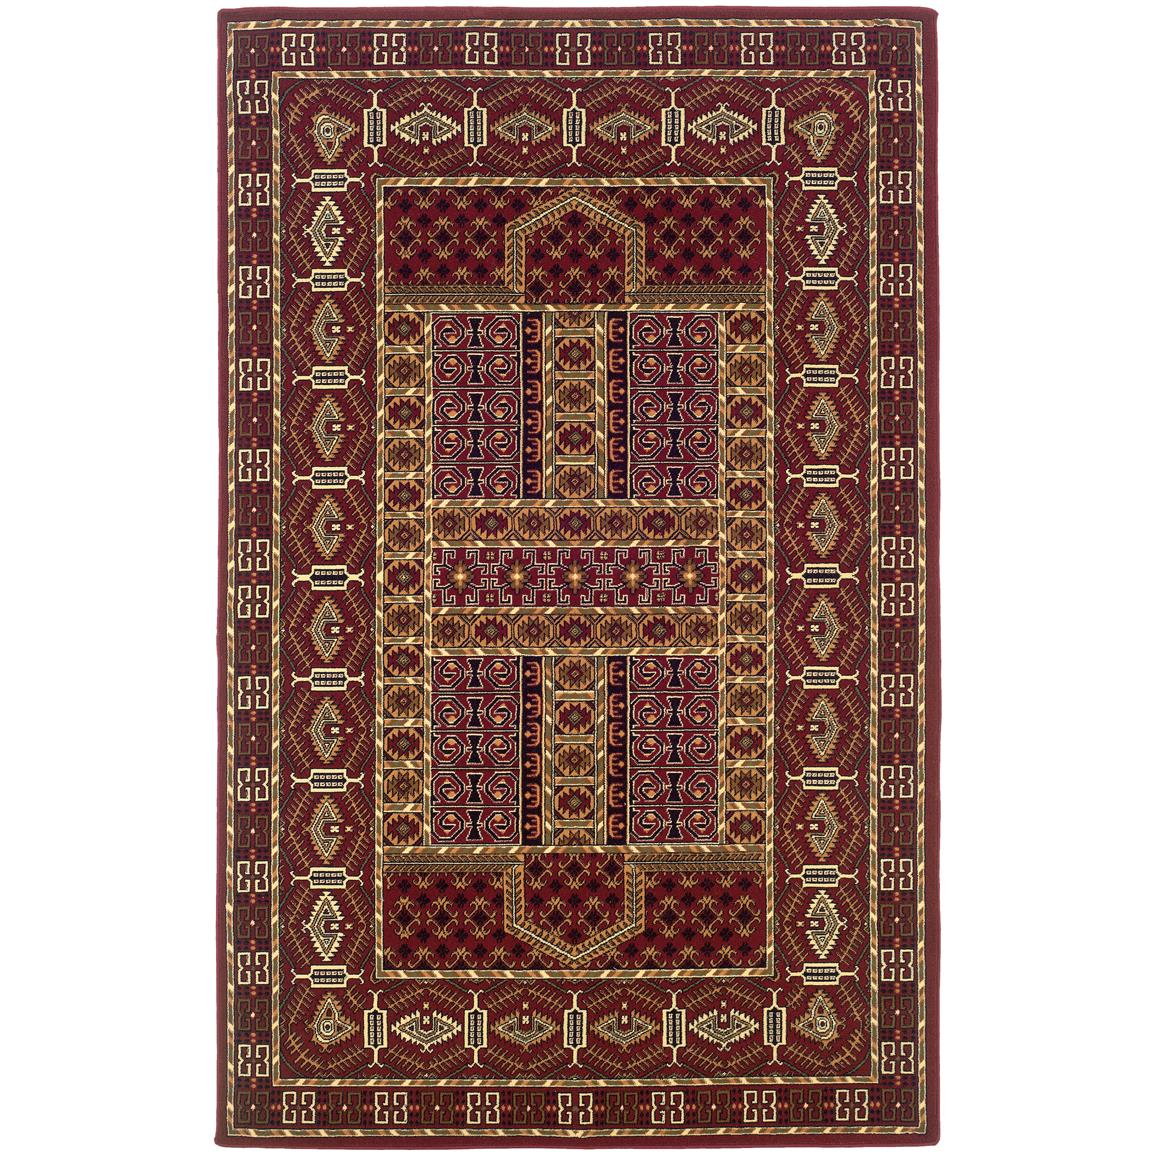 Linon Gem Belouch Rust, White and Burgundy Area Rug